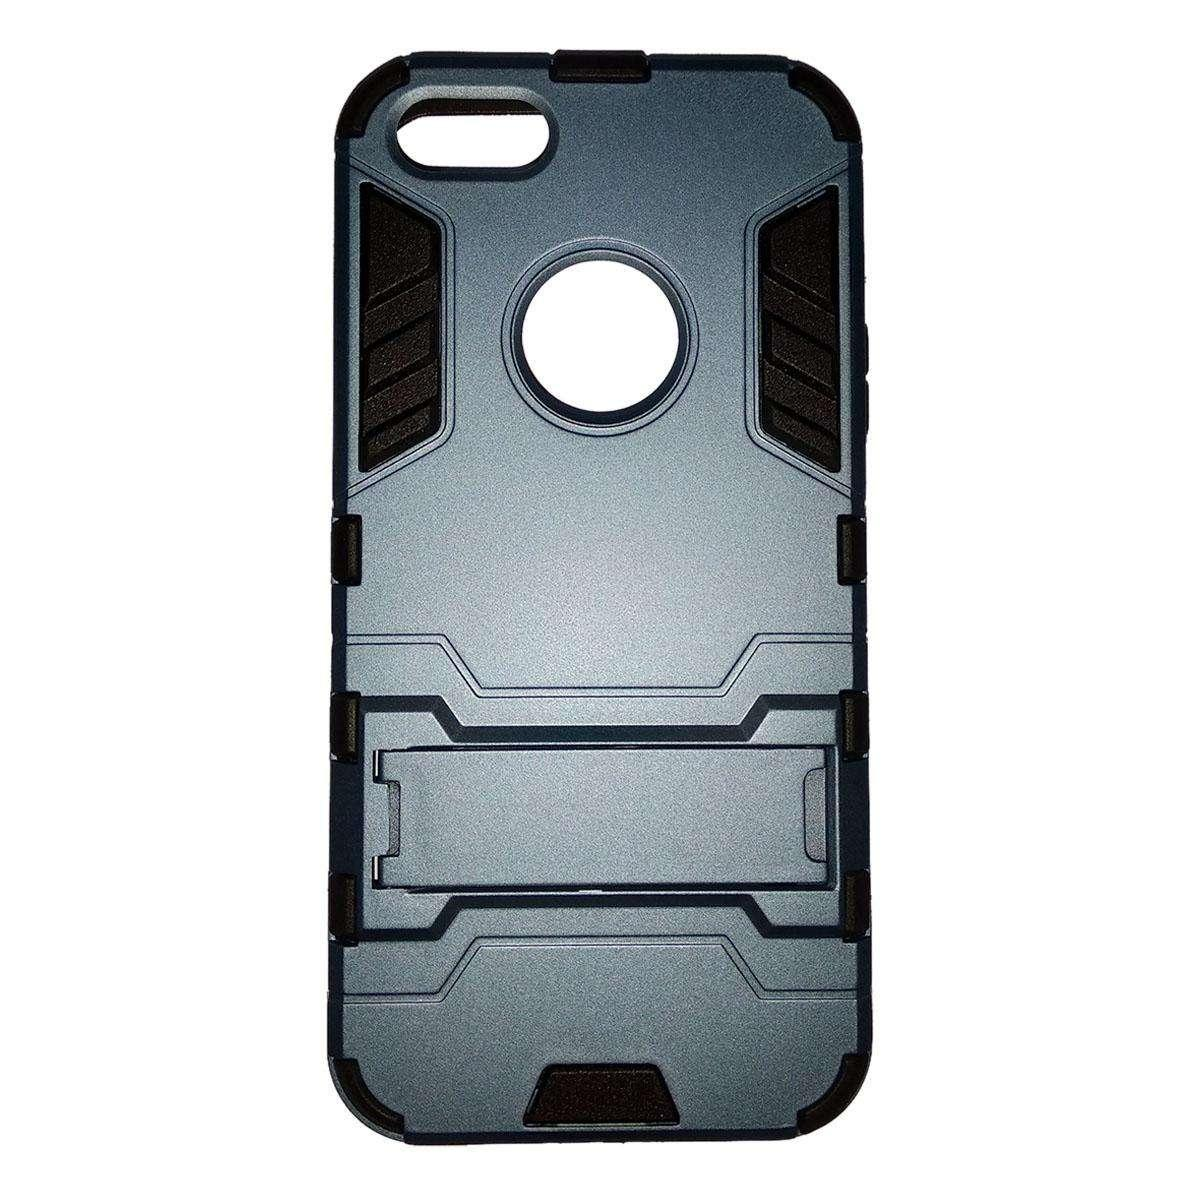 Mobile Phone Cover In Bangladesh At Best Price Casing Handphone Back Tempered Glass Series For Xiaomi Redmi 3s Black Free Ultrathinblack Iphone 5s Armor Shockproof Case